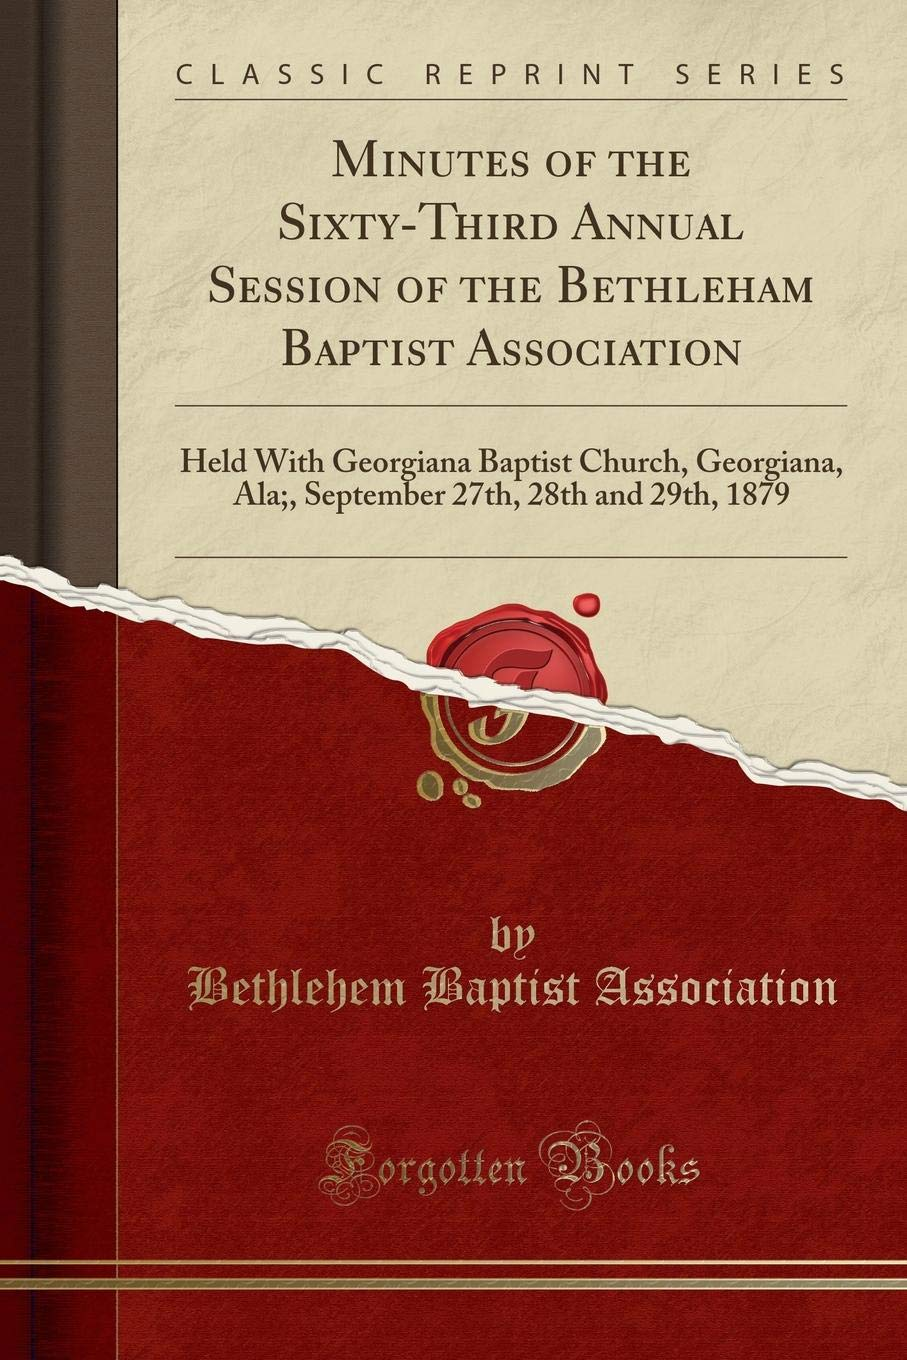 Minutes of the Sixty-Third Annual Session of the Bethleham Baptist Association: Held With Georgiana Baptist Church, Georgiana, Ala;, September 27th, 28th and 29th, 1879 (Classic Reprint) PDF